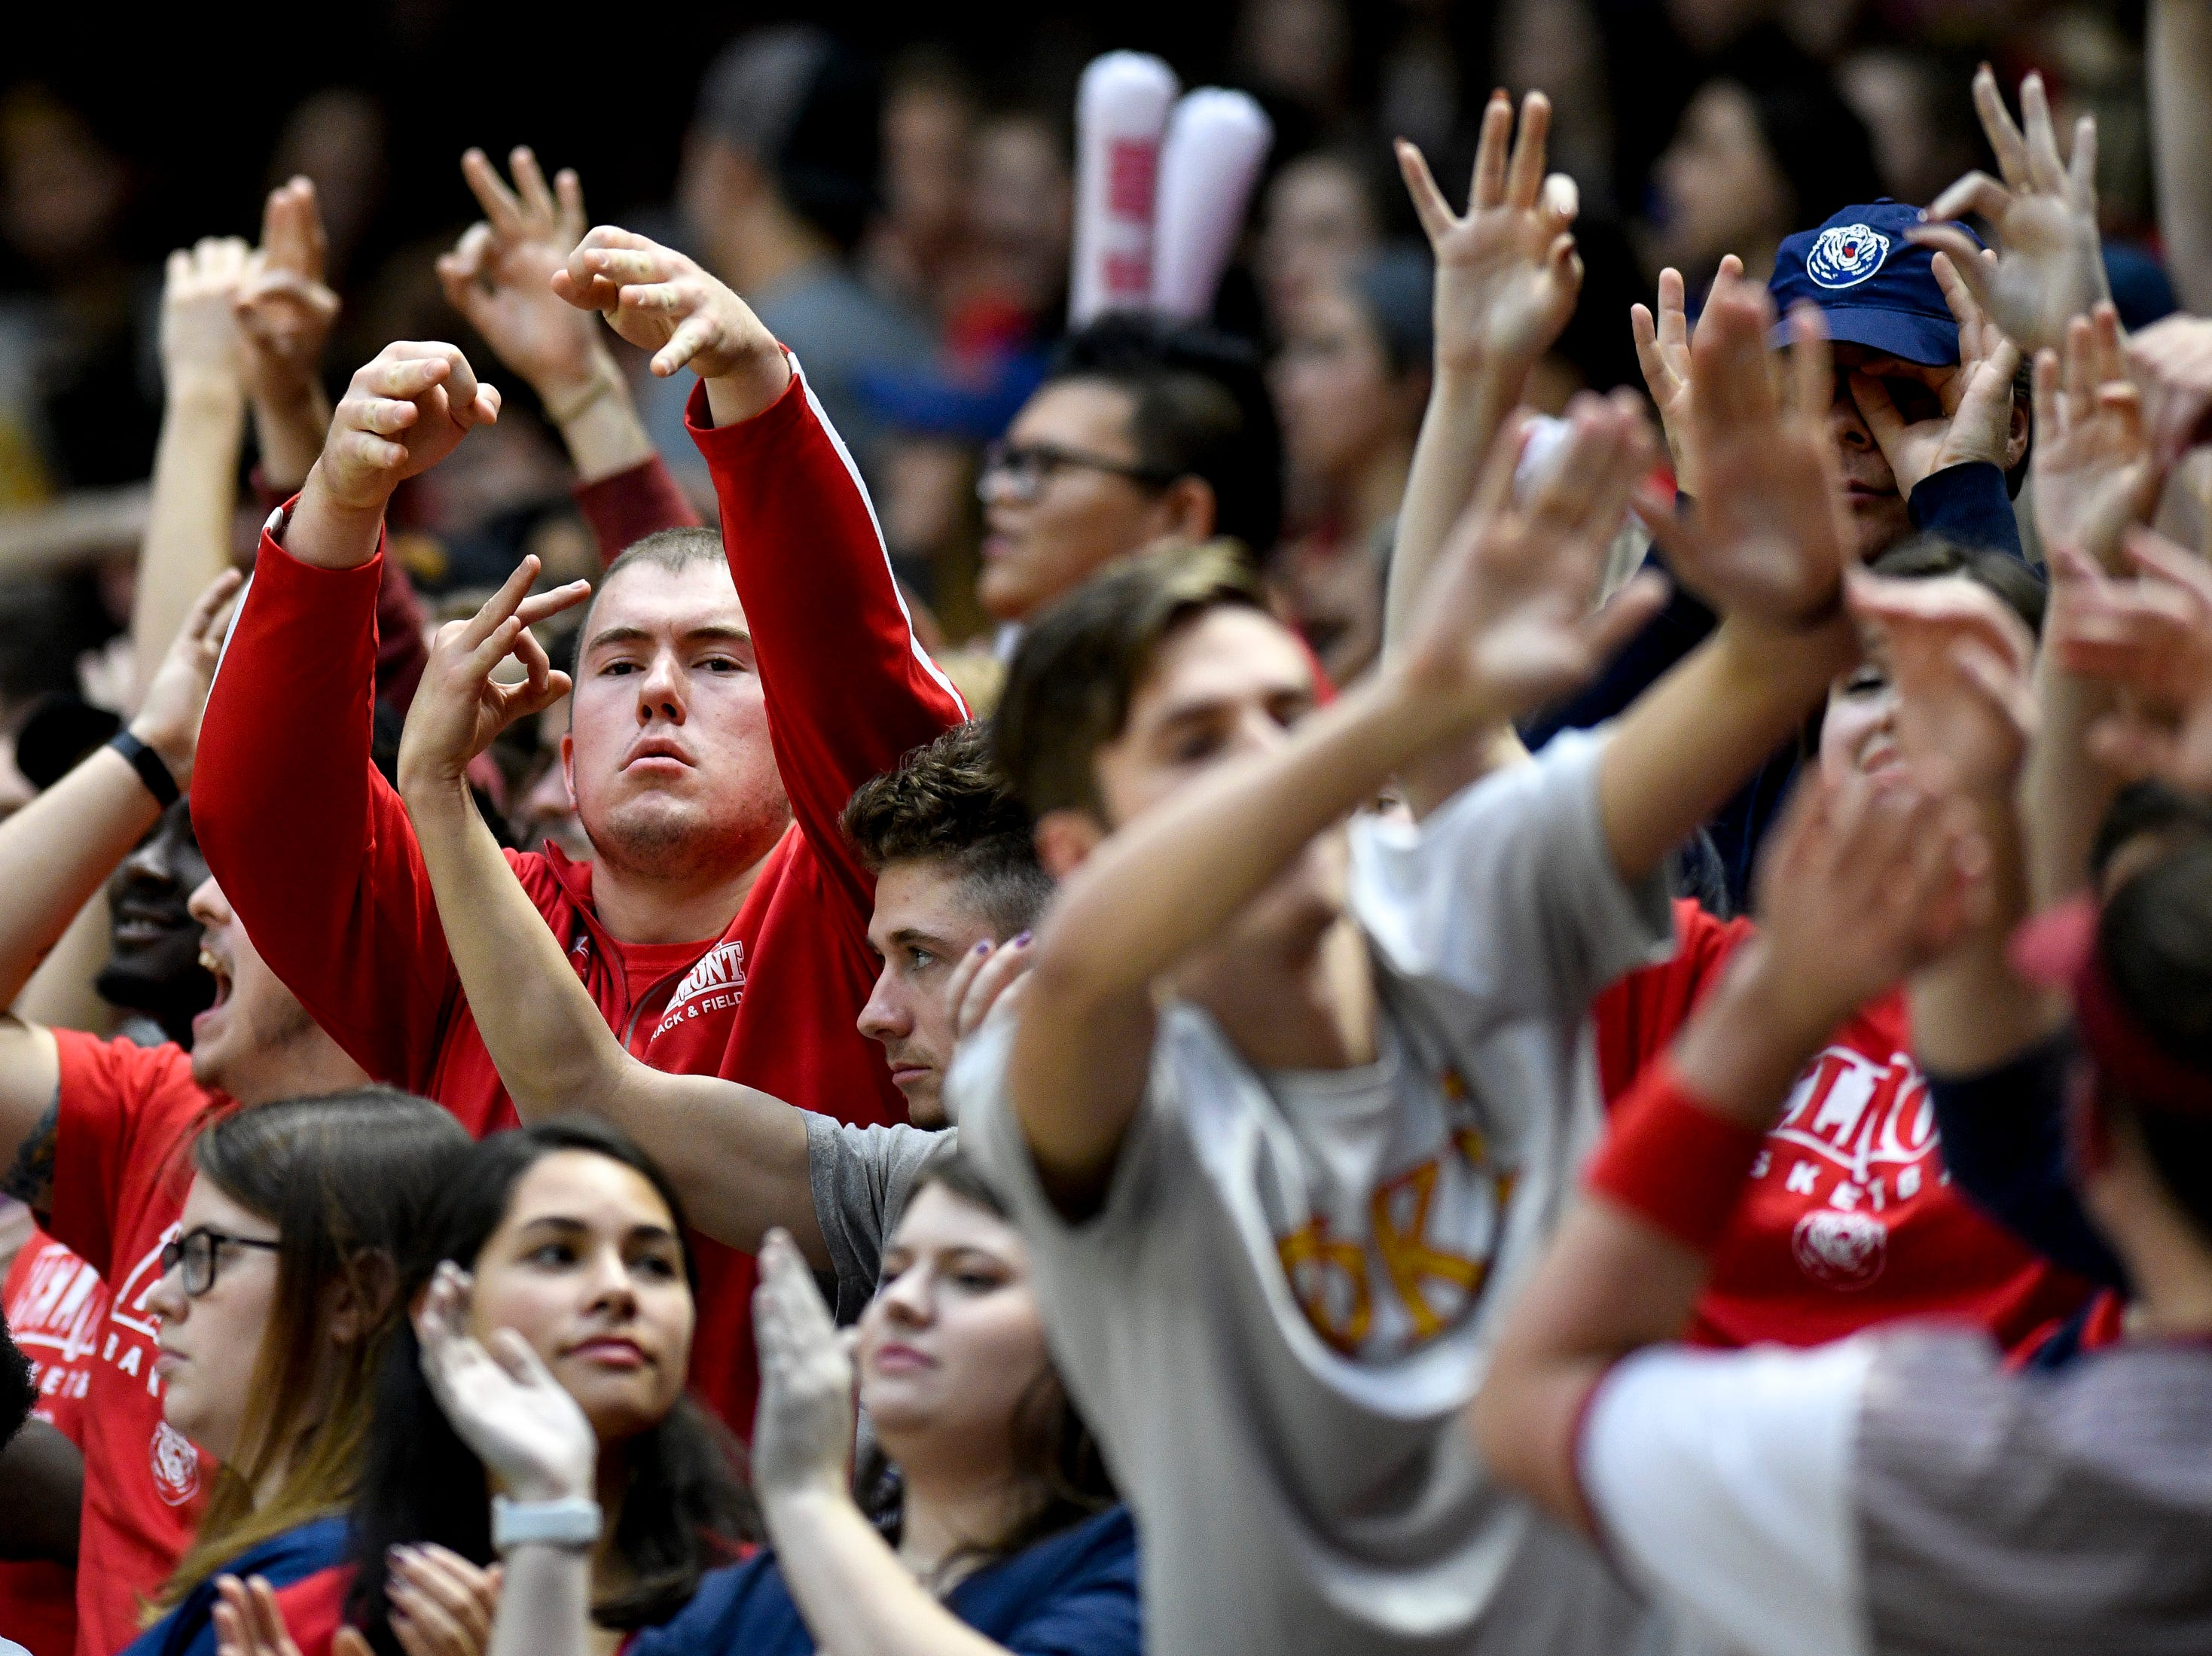 Belmont fans cheer against Lipscomb during the first half at the Curb Event Center in Nashville, Tenn., Tuesday, Dec. 4, 2018.